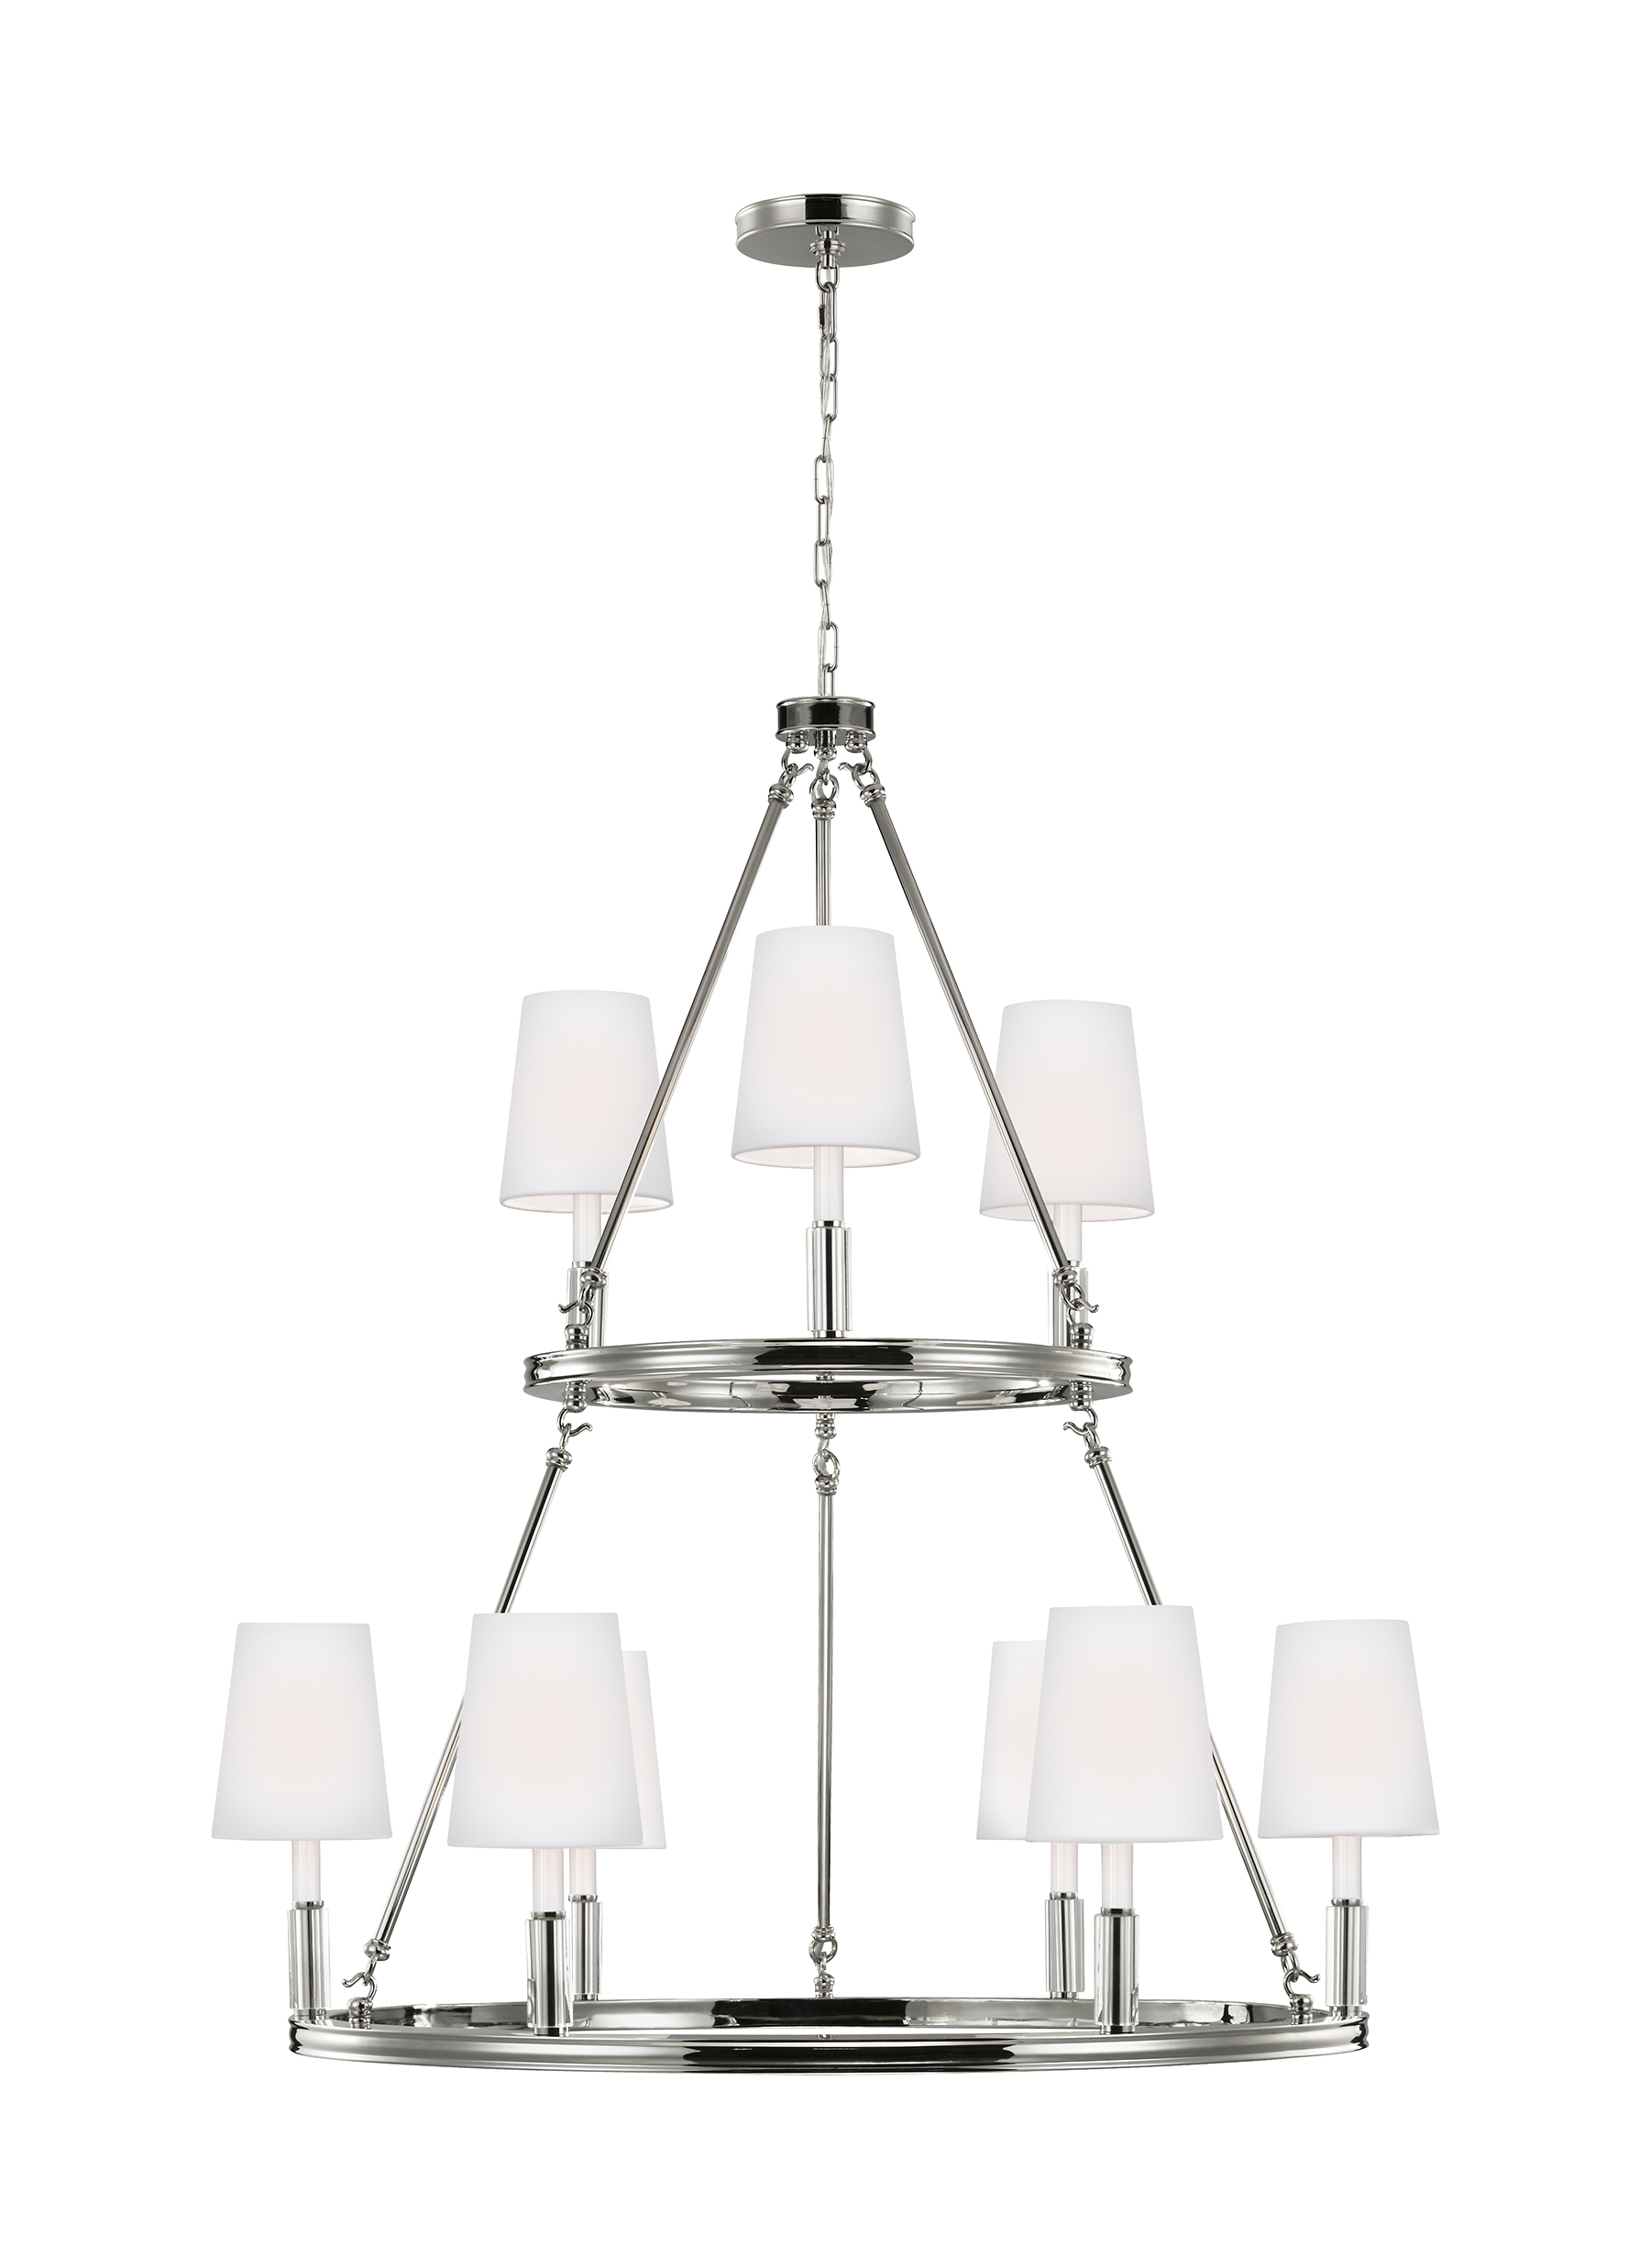 Lismore lighting collection from feiss 9 light lismore chandelier arubaitofo Gallery